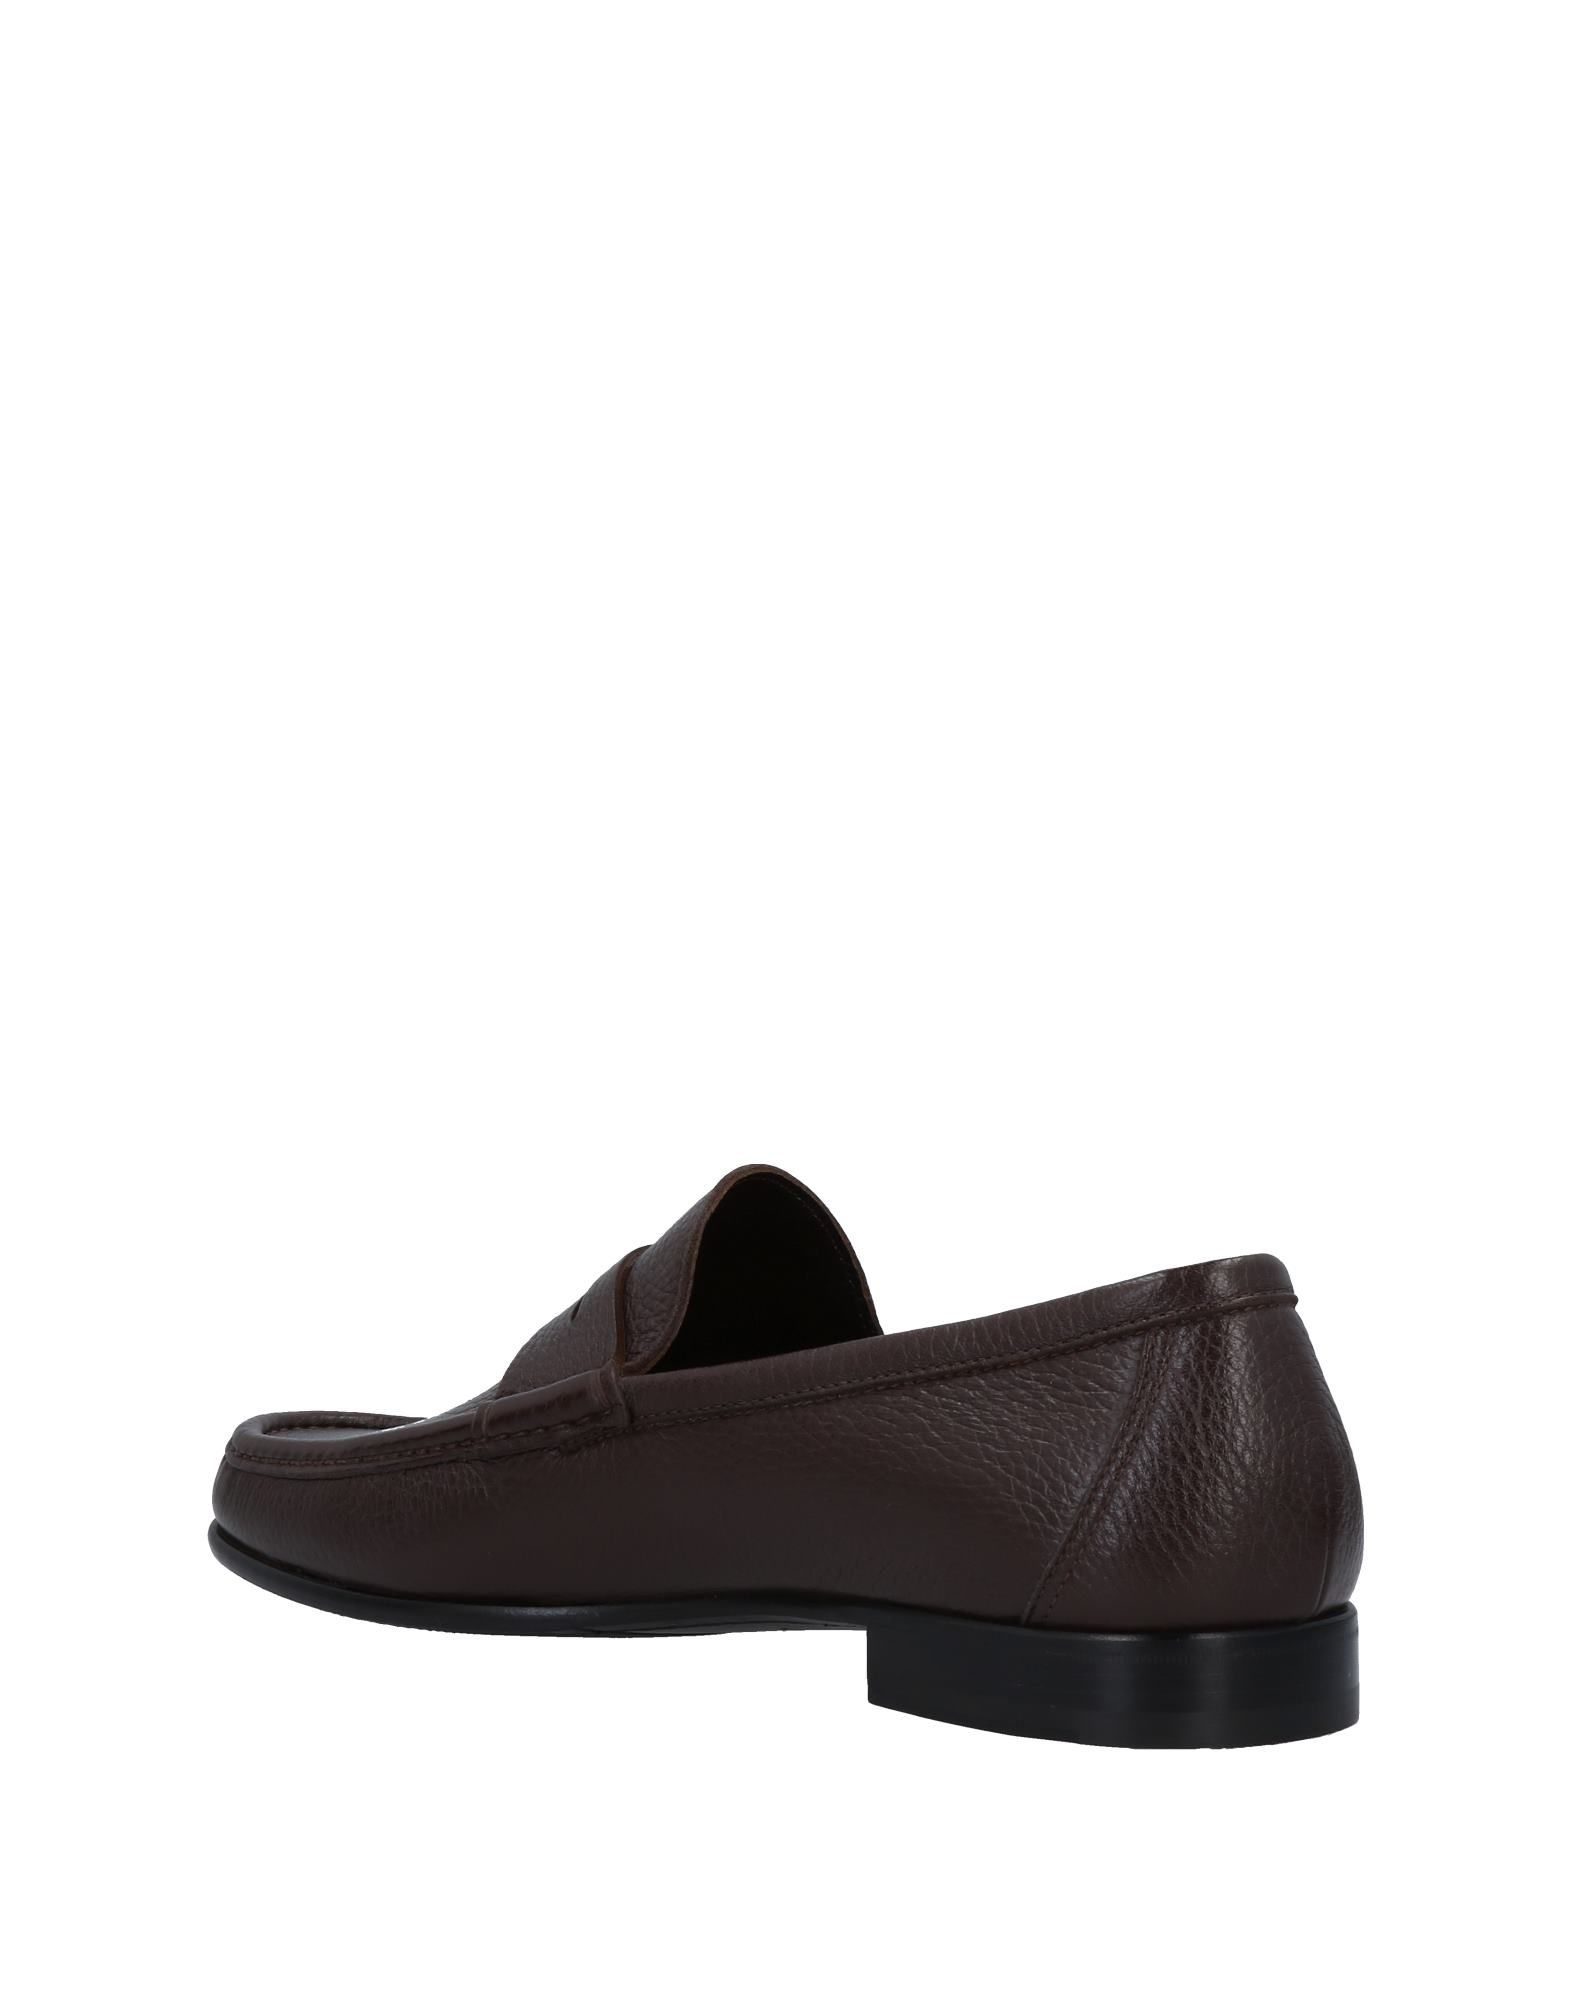 Bruno Magli Loafers Loafers Loafers - Men Bruno Magli Loafers online on  United Kingdom - 11490626RM 216614